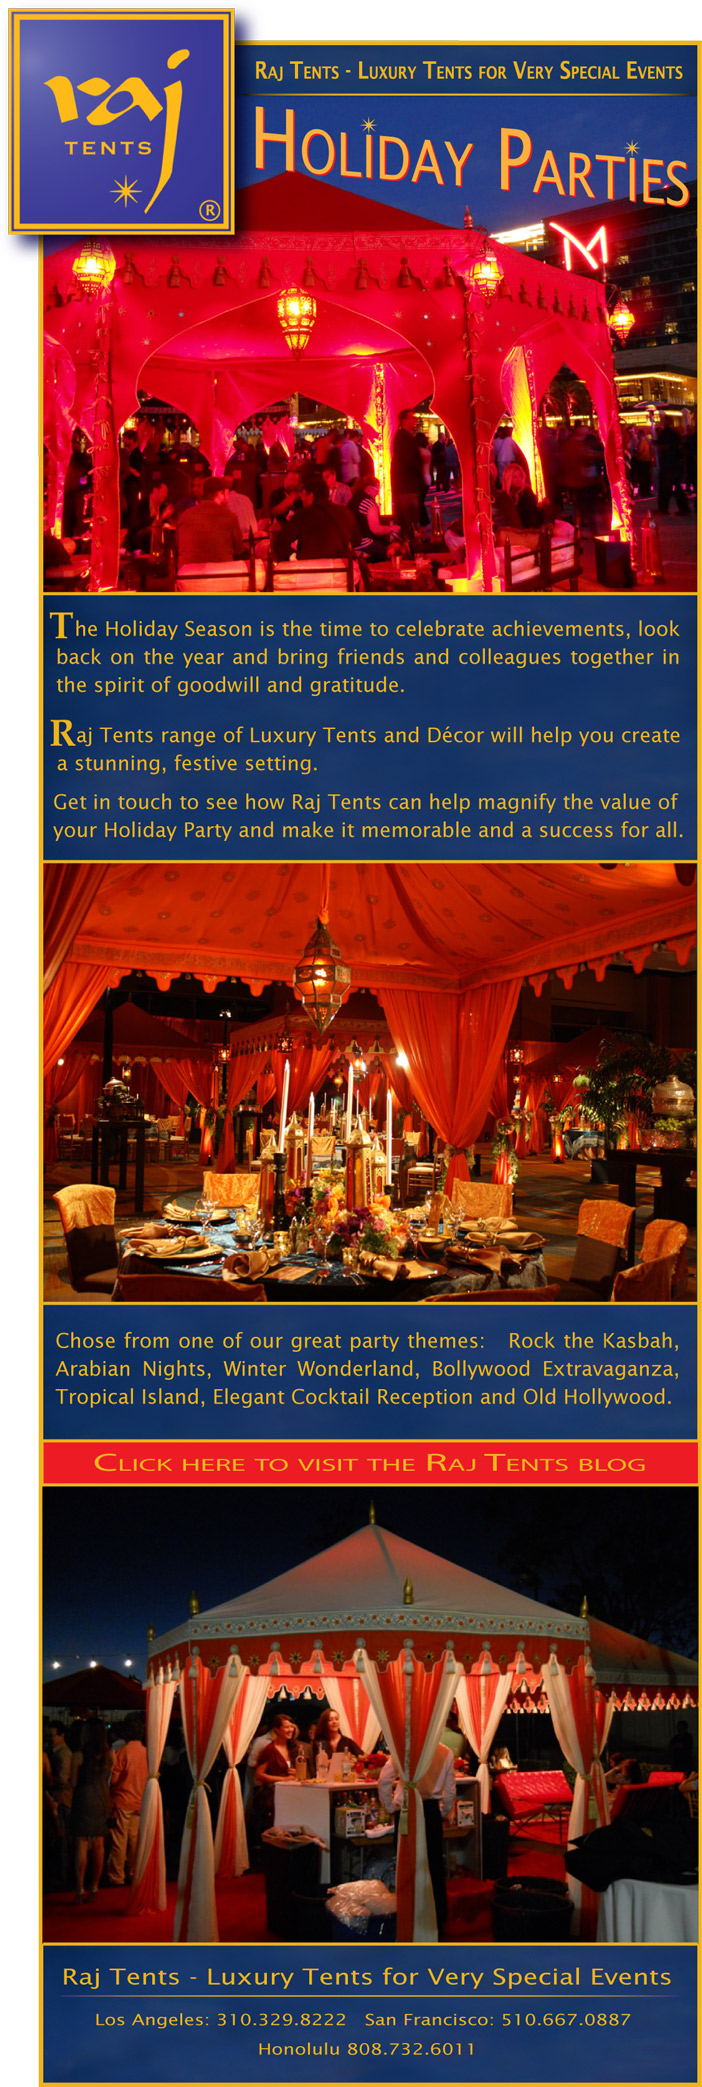 Raj-Tents-Holiday-Party-Newsletter-2014.jpg